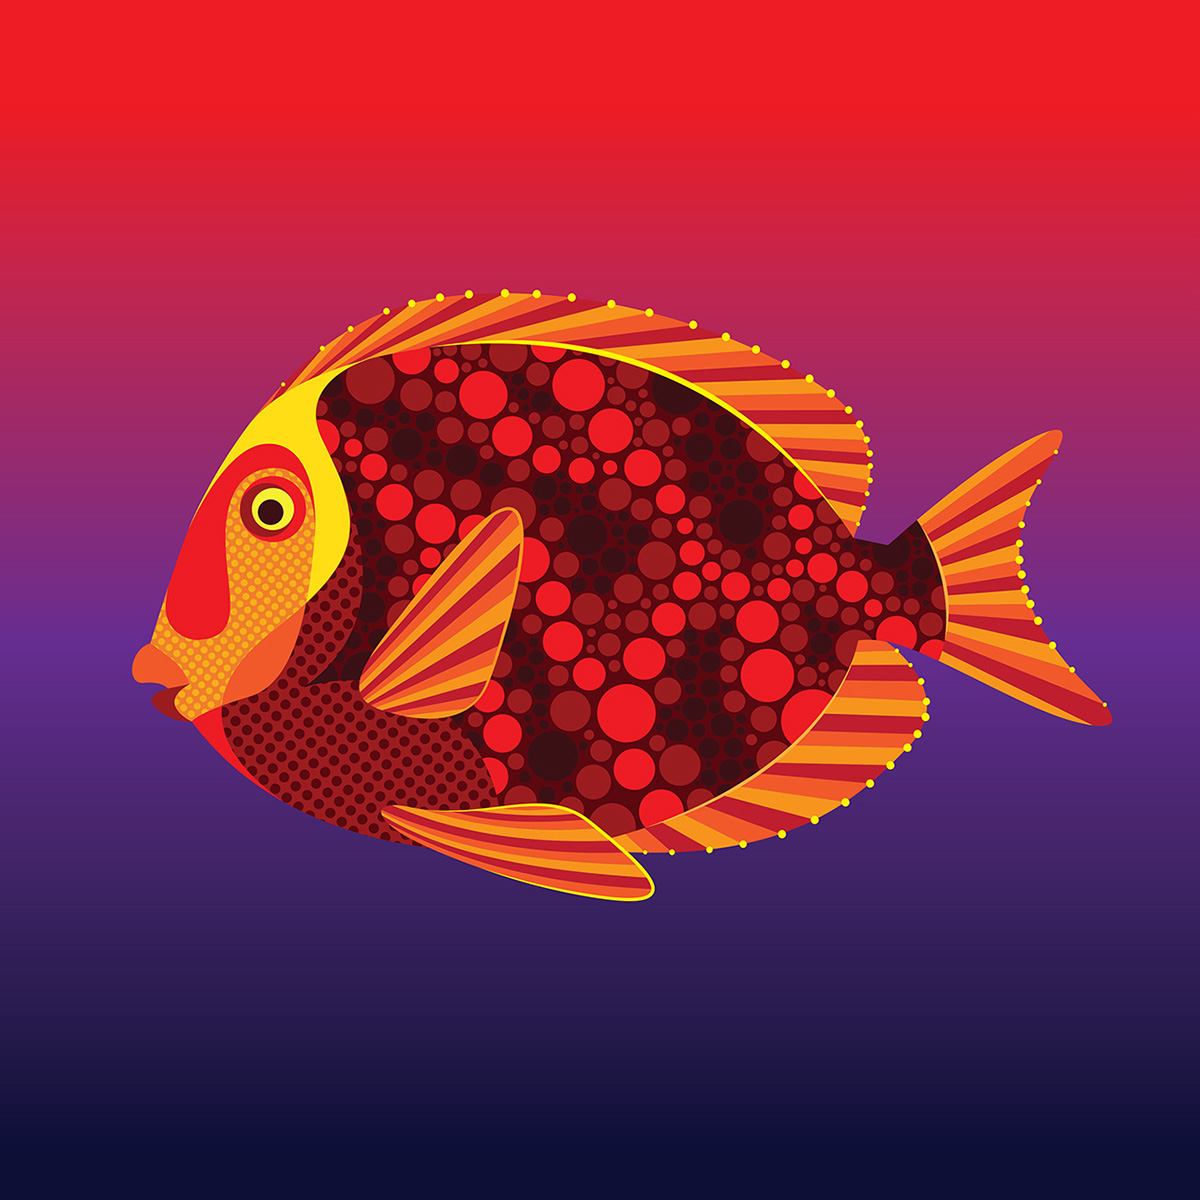 Endangered Tropical Fish. on Behance